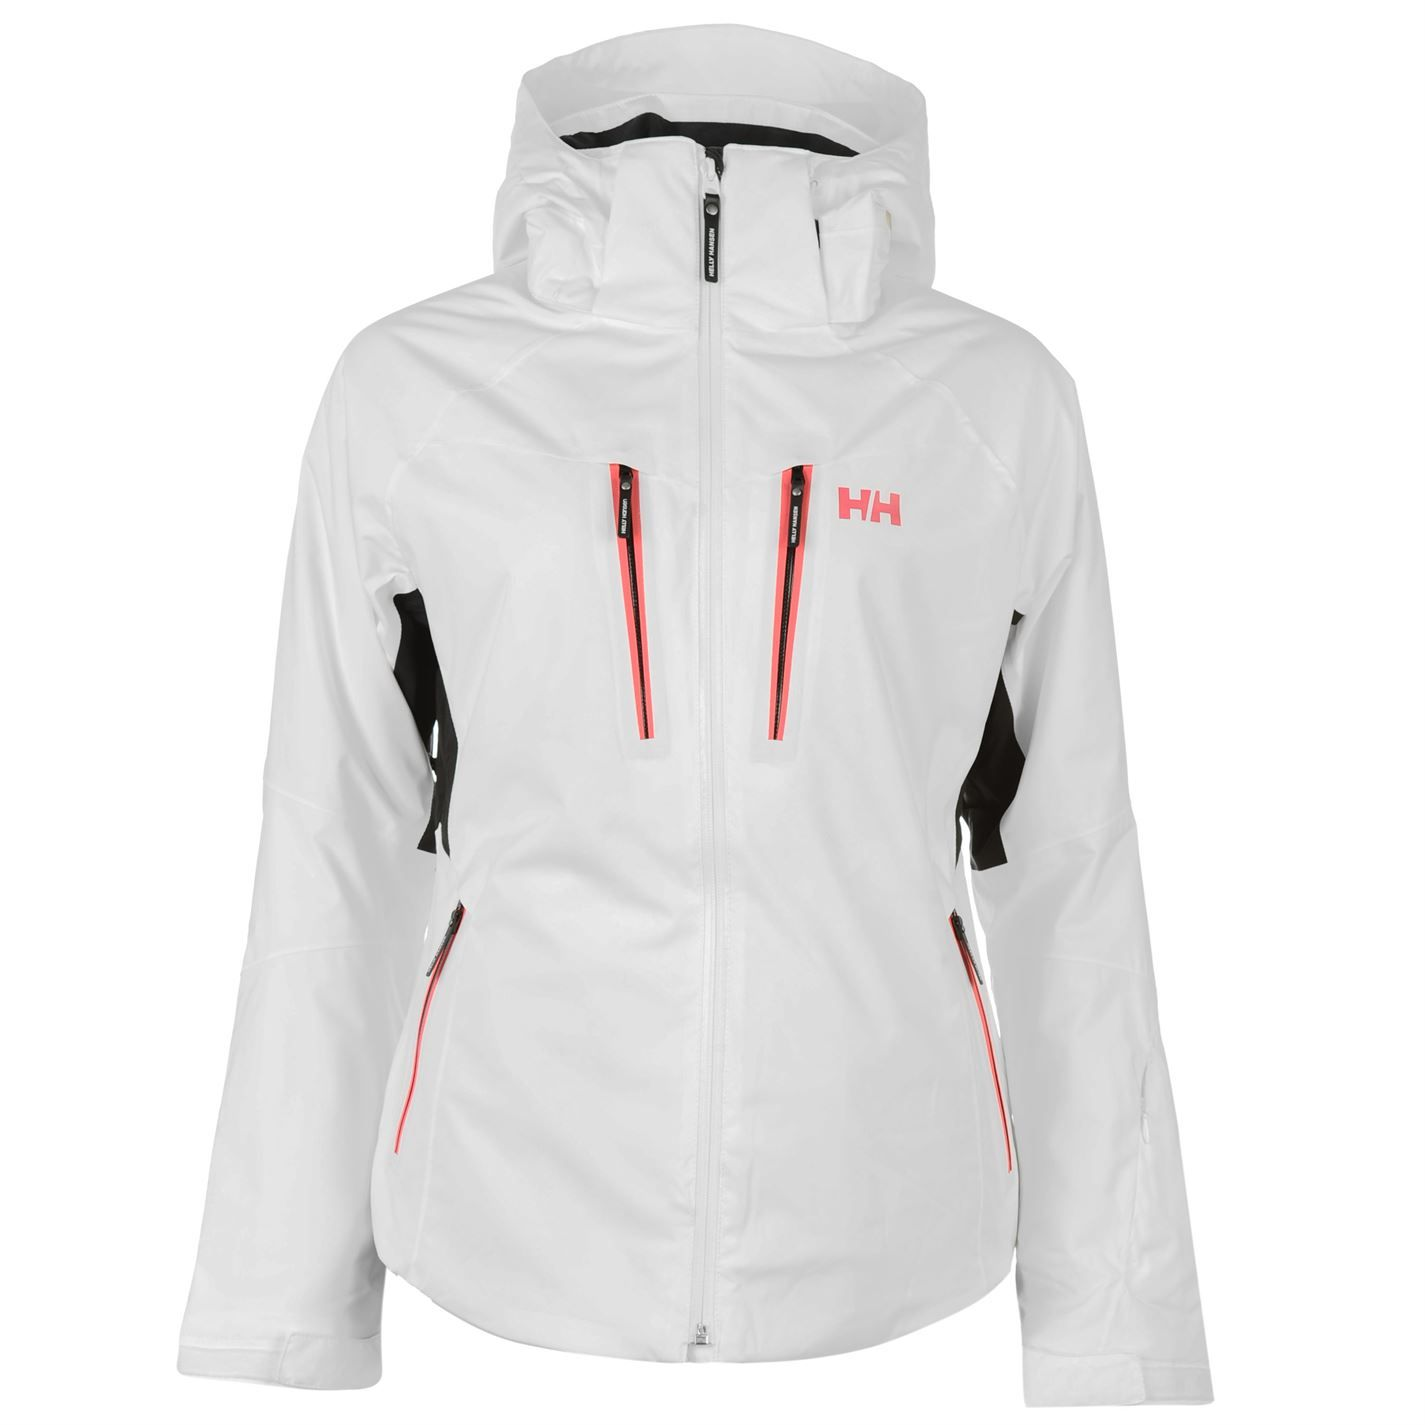 men ski gear outfit helly hansen girls. Black Bedroom Furniture Sets. Home Design Ideas